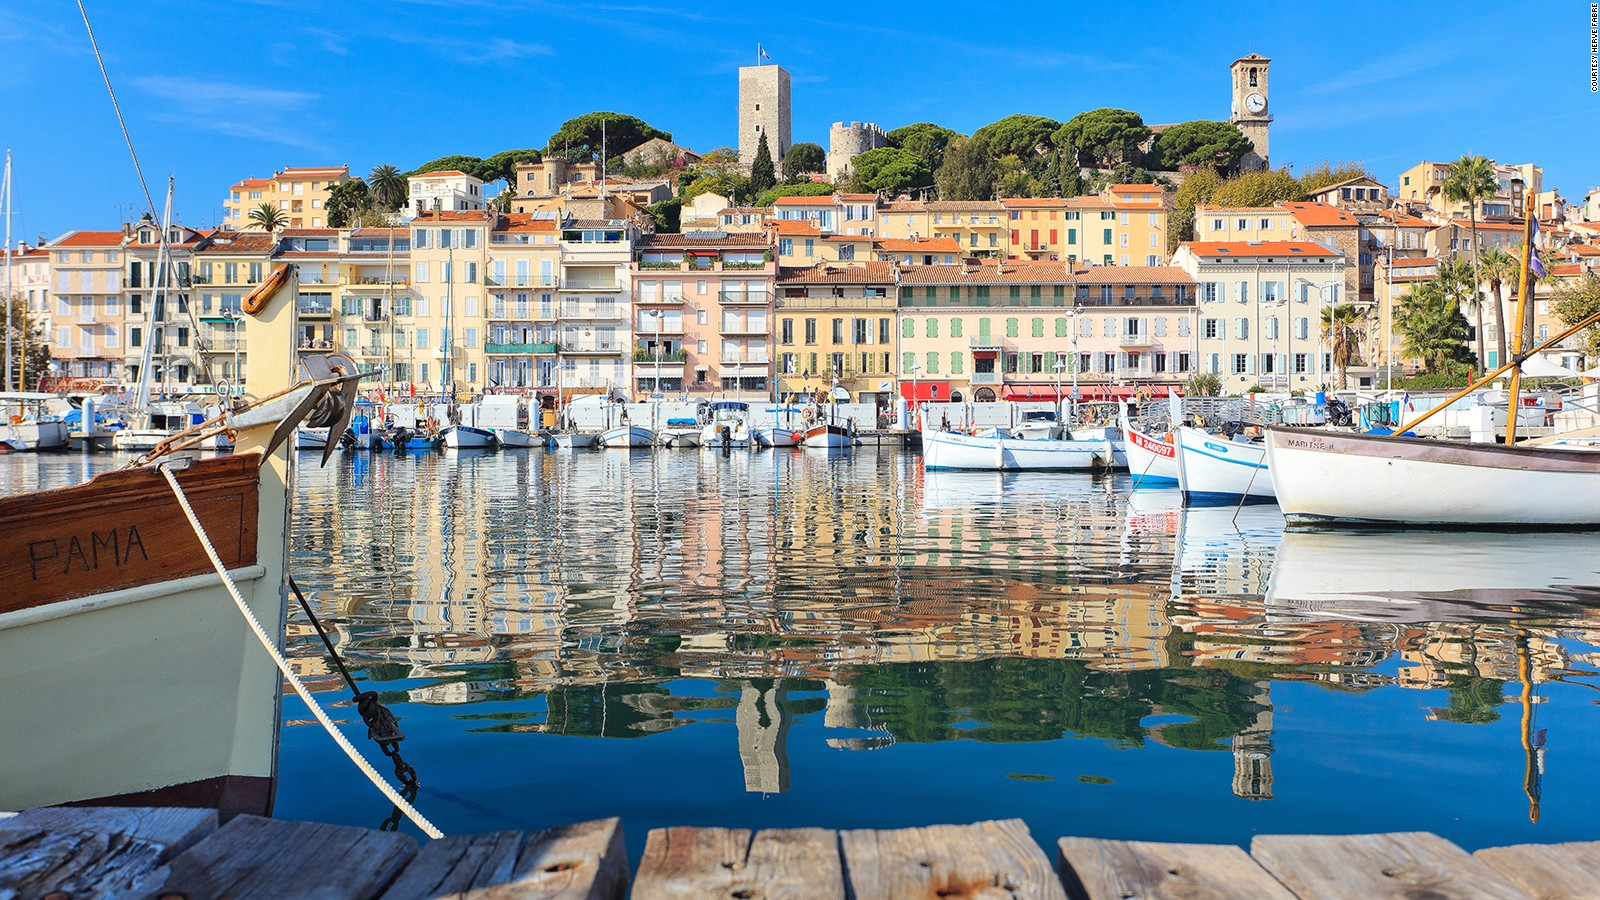 Guide to Cannes: Famous for its red-carpet events, this French Riviera city has turquoise waters, sandy beaches and old-town charm